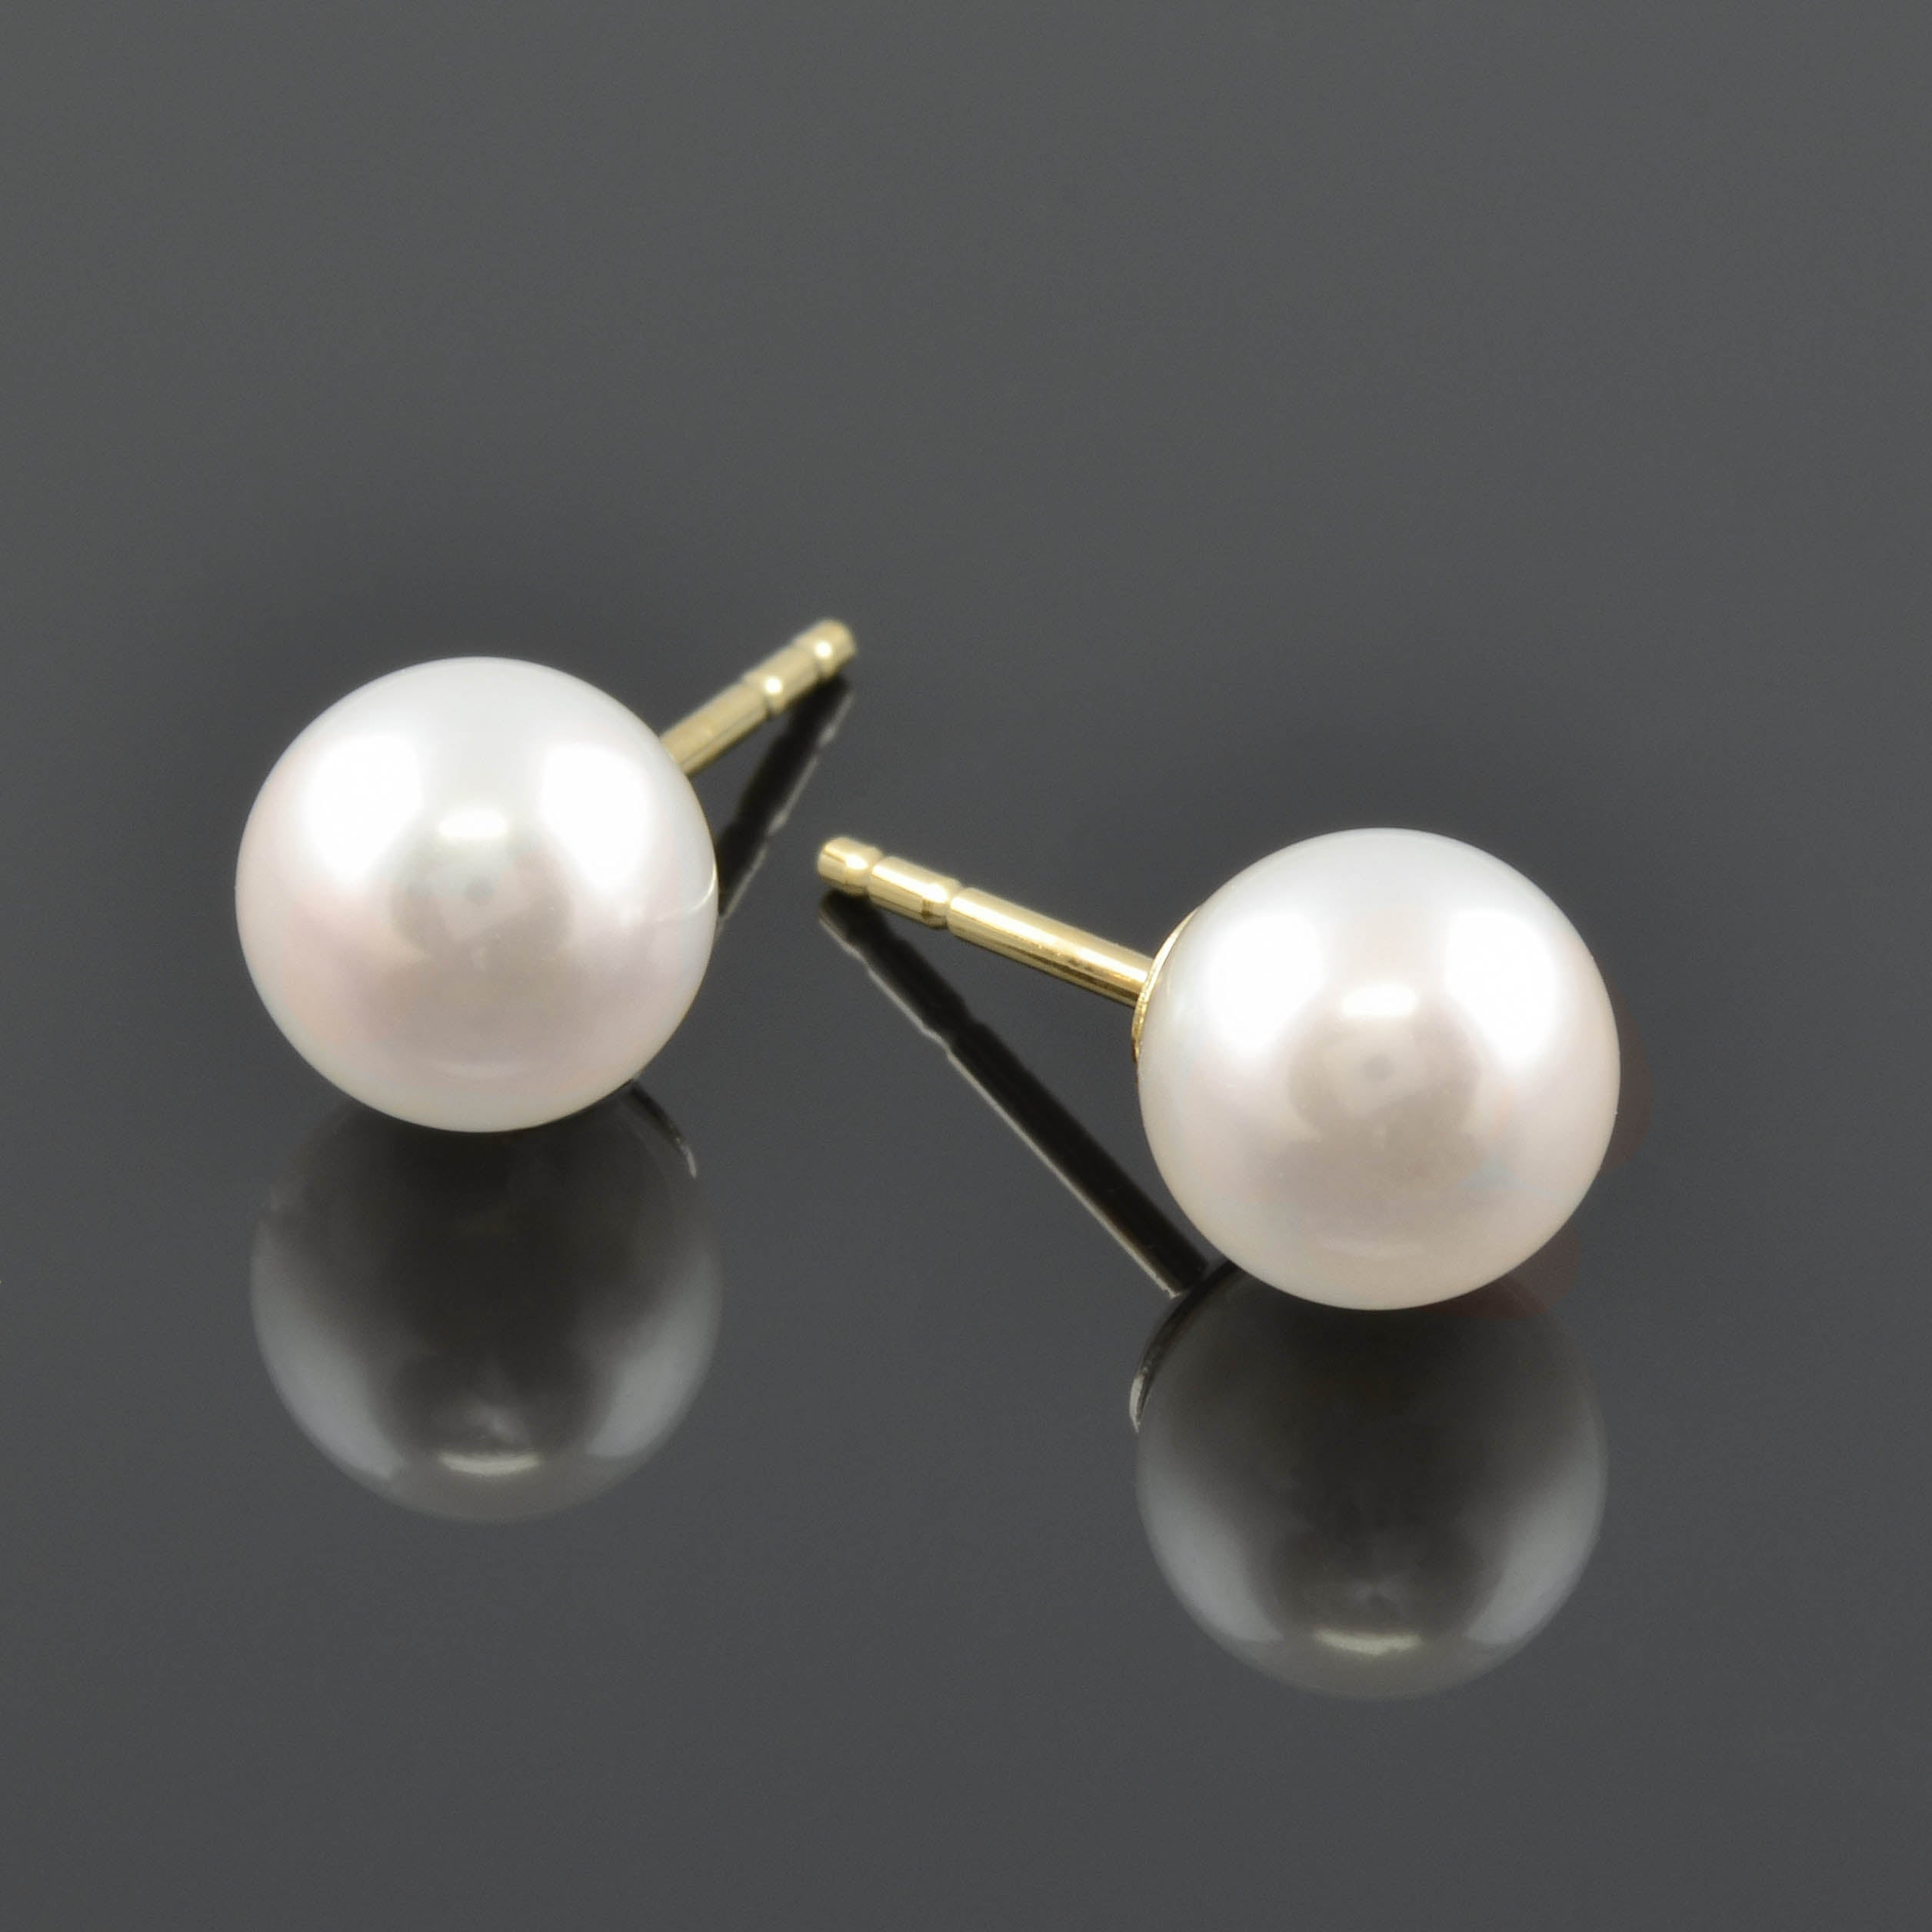 cooper product gold white binkley earrings tahitian pearl stud real